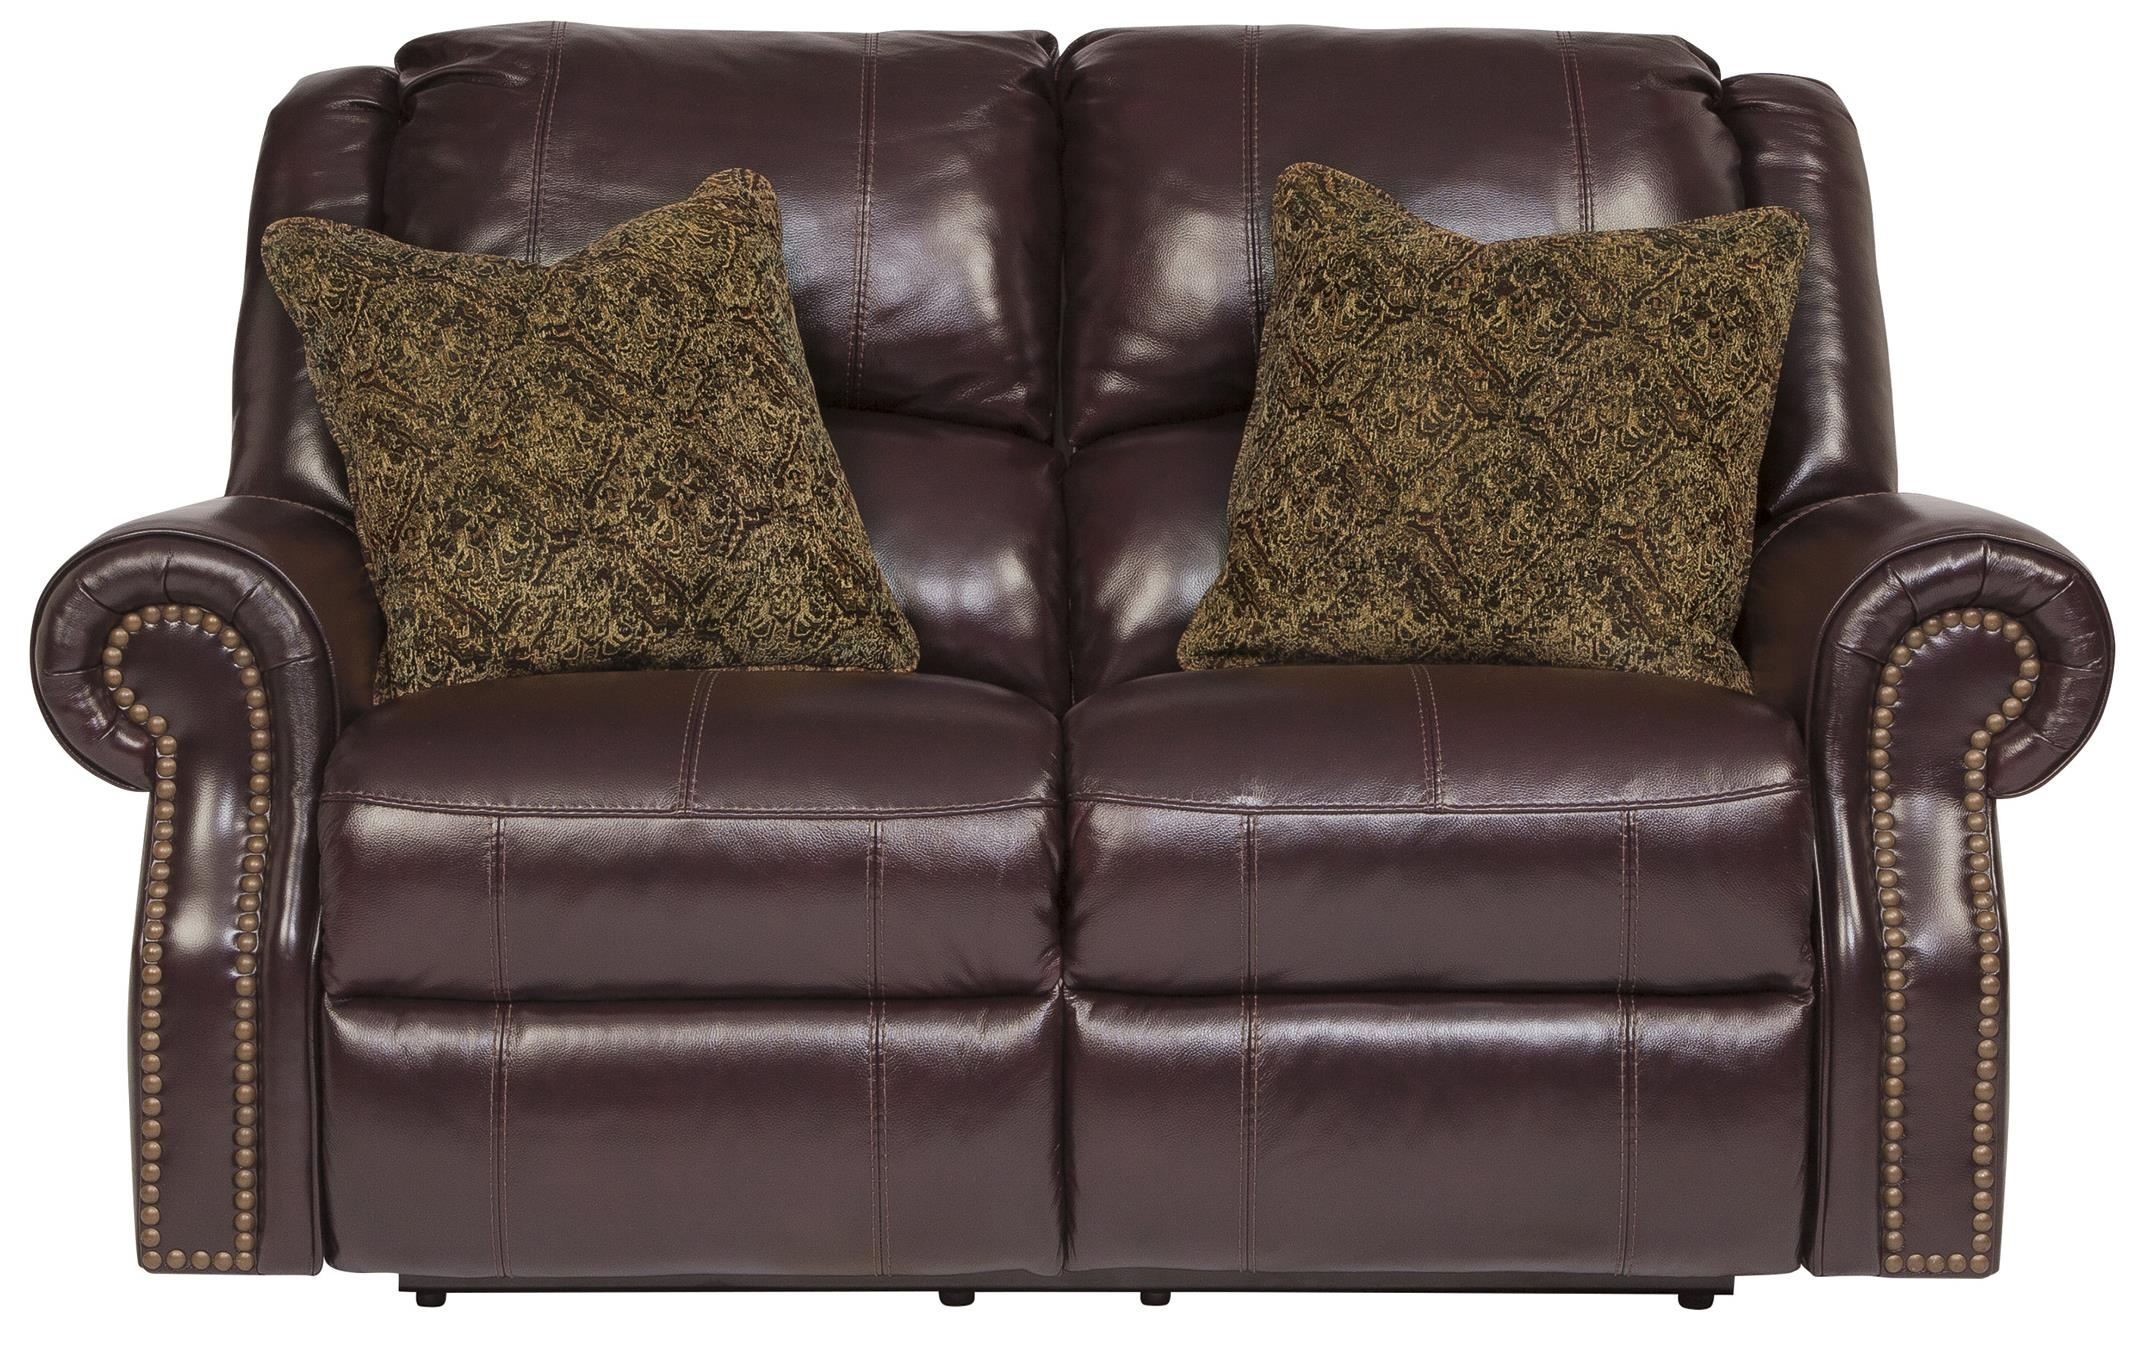 Top Grain Leather Match Reclining Power Loveseat with Nailhead